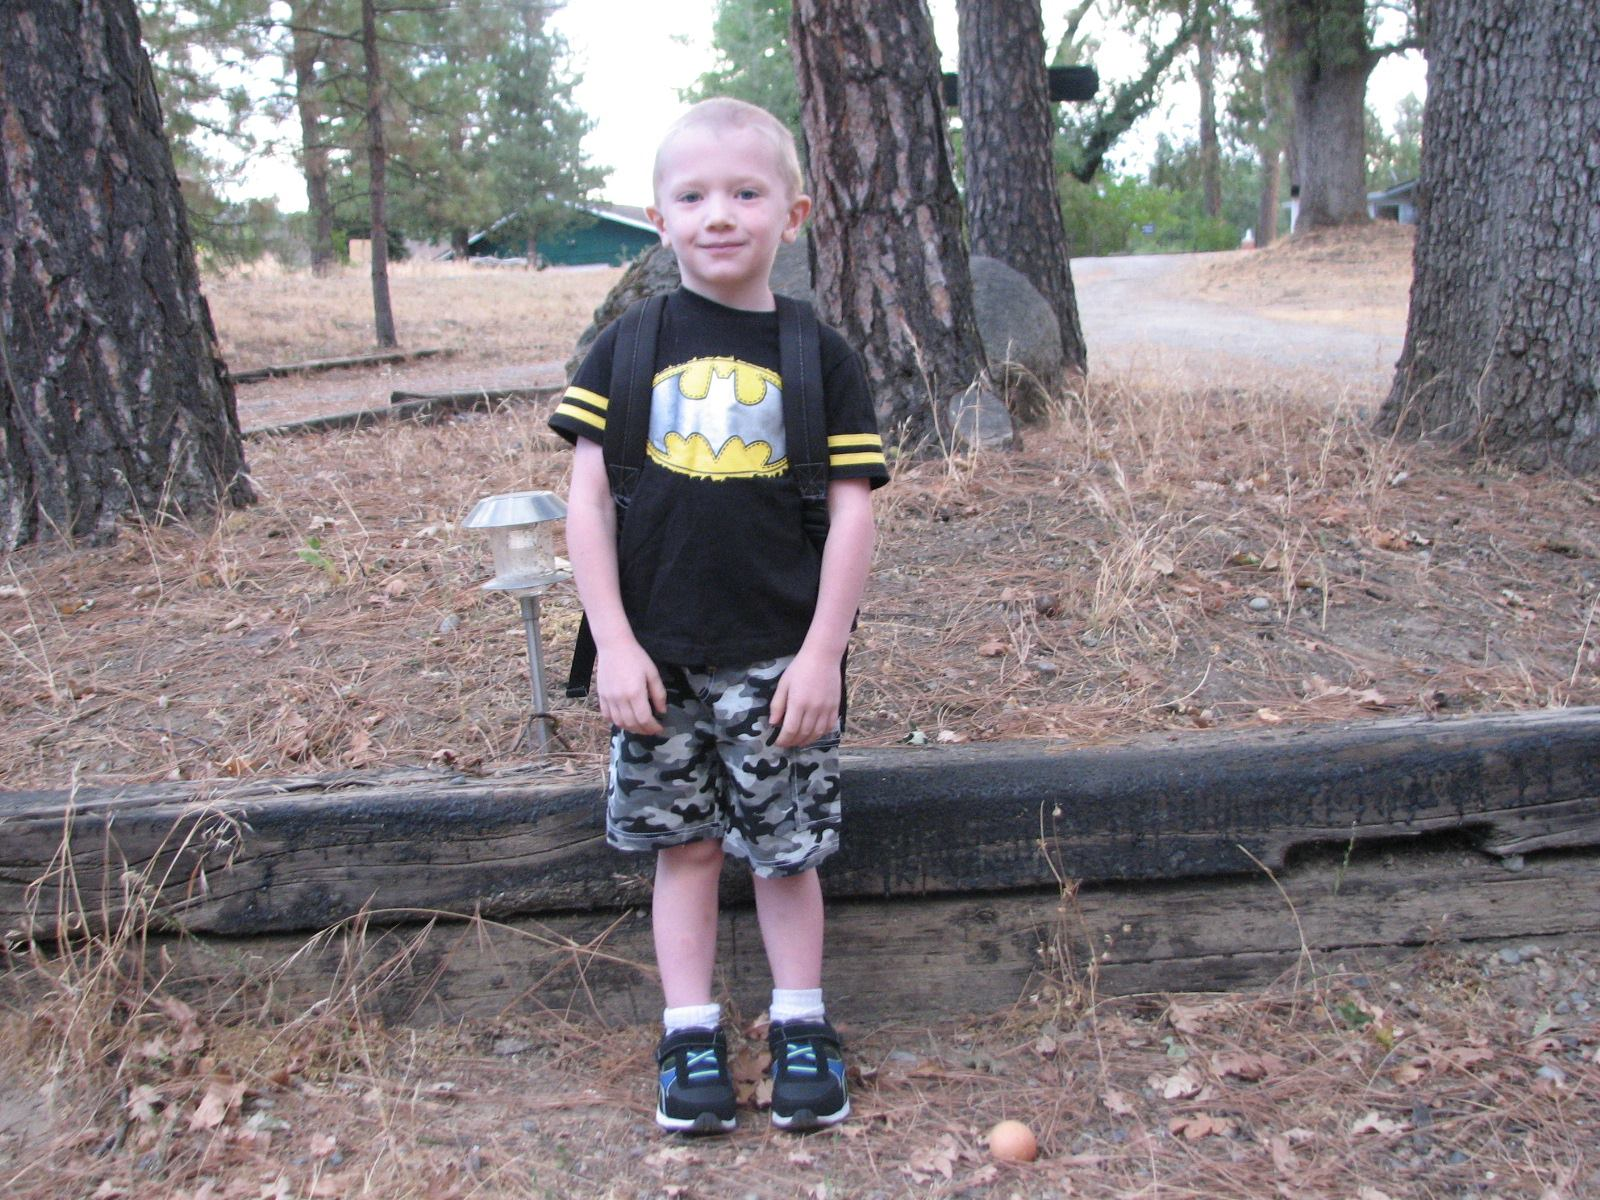 Here is a picture of my son Jackson he is a transition kindergartener at O.E.S - Stephanie Harlan Bullock